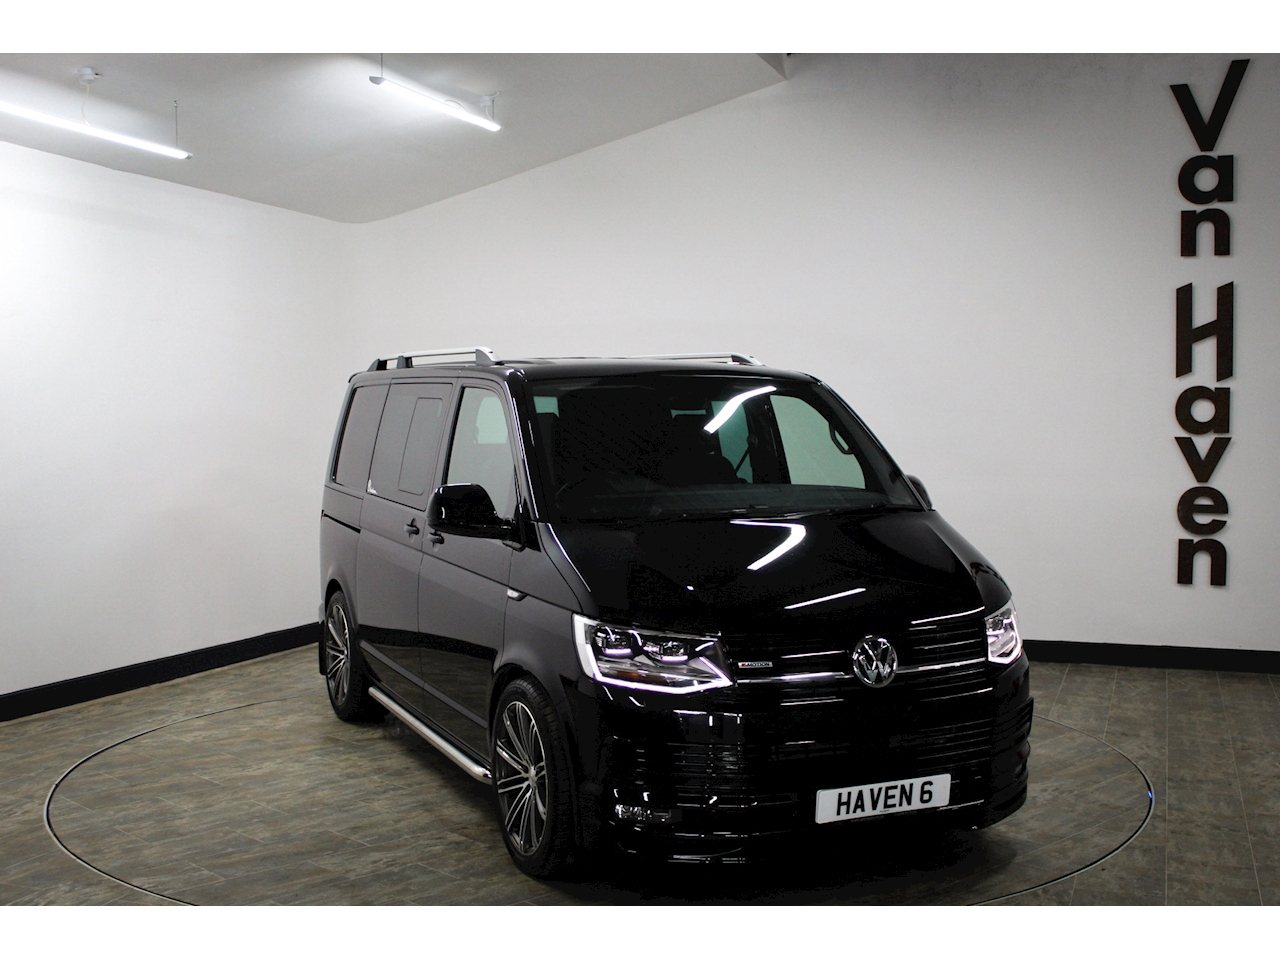 Transporter T32 Tdi Haven 6 Kombi Highline 4 motion BMT 204 4dr swb kombi DSG diesel